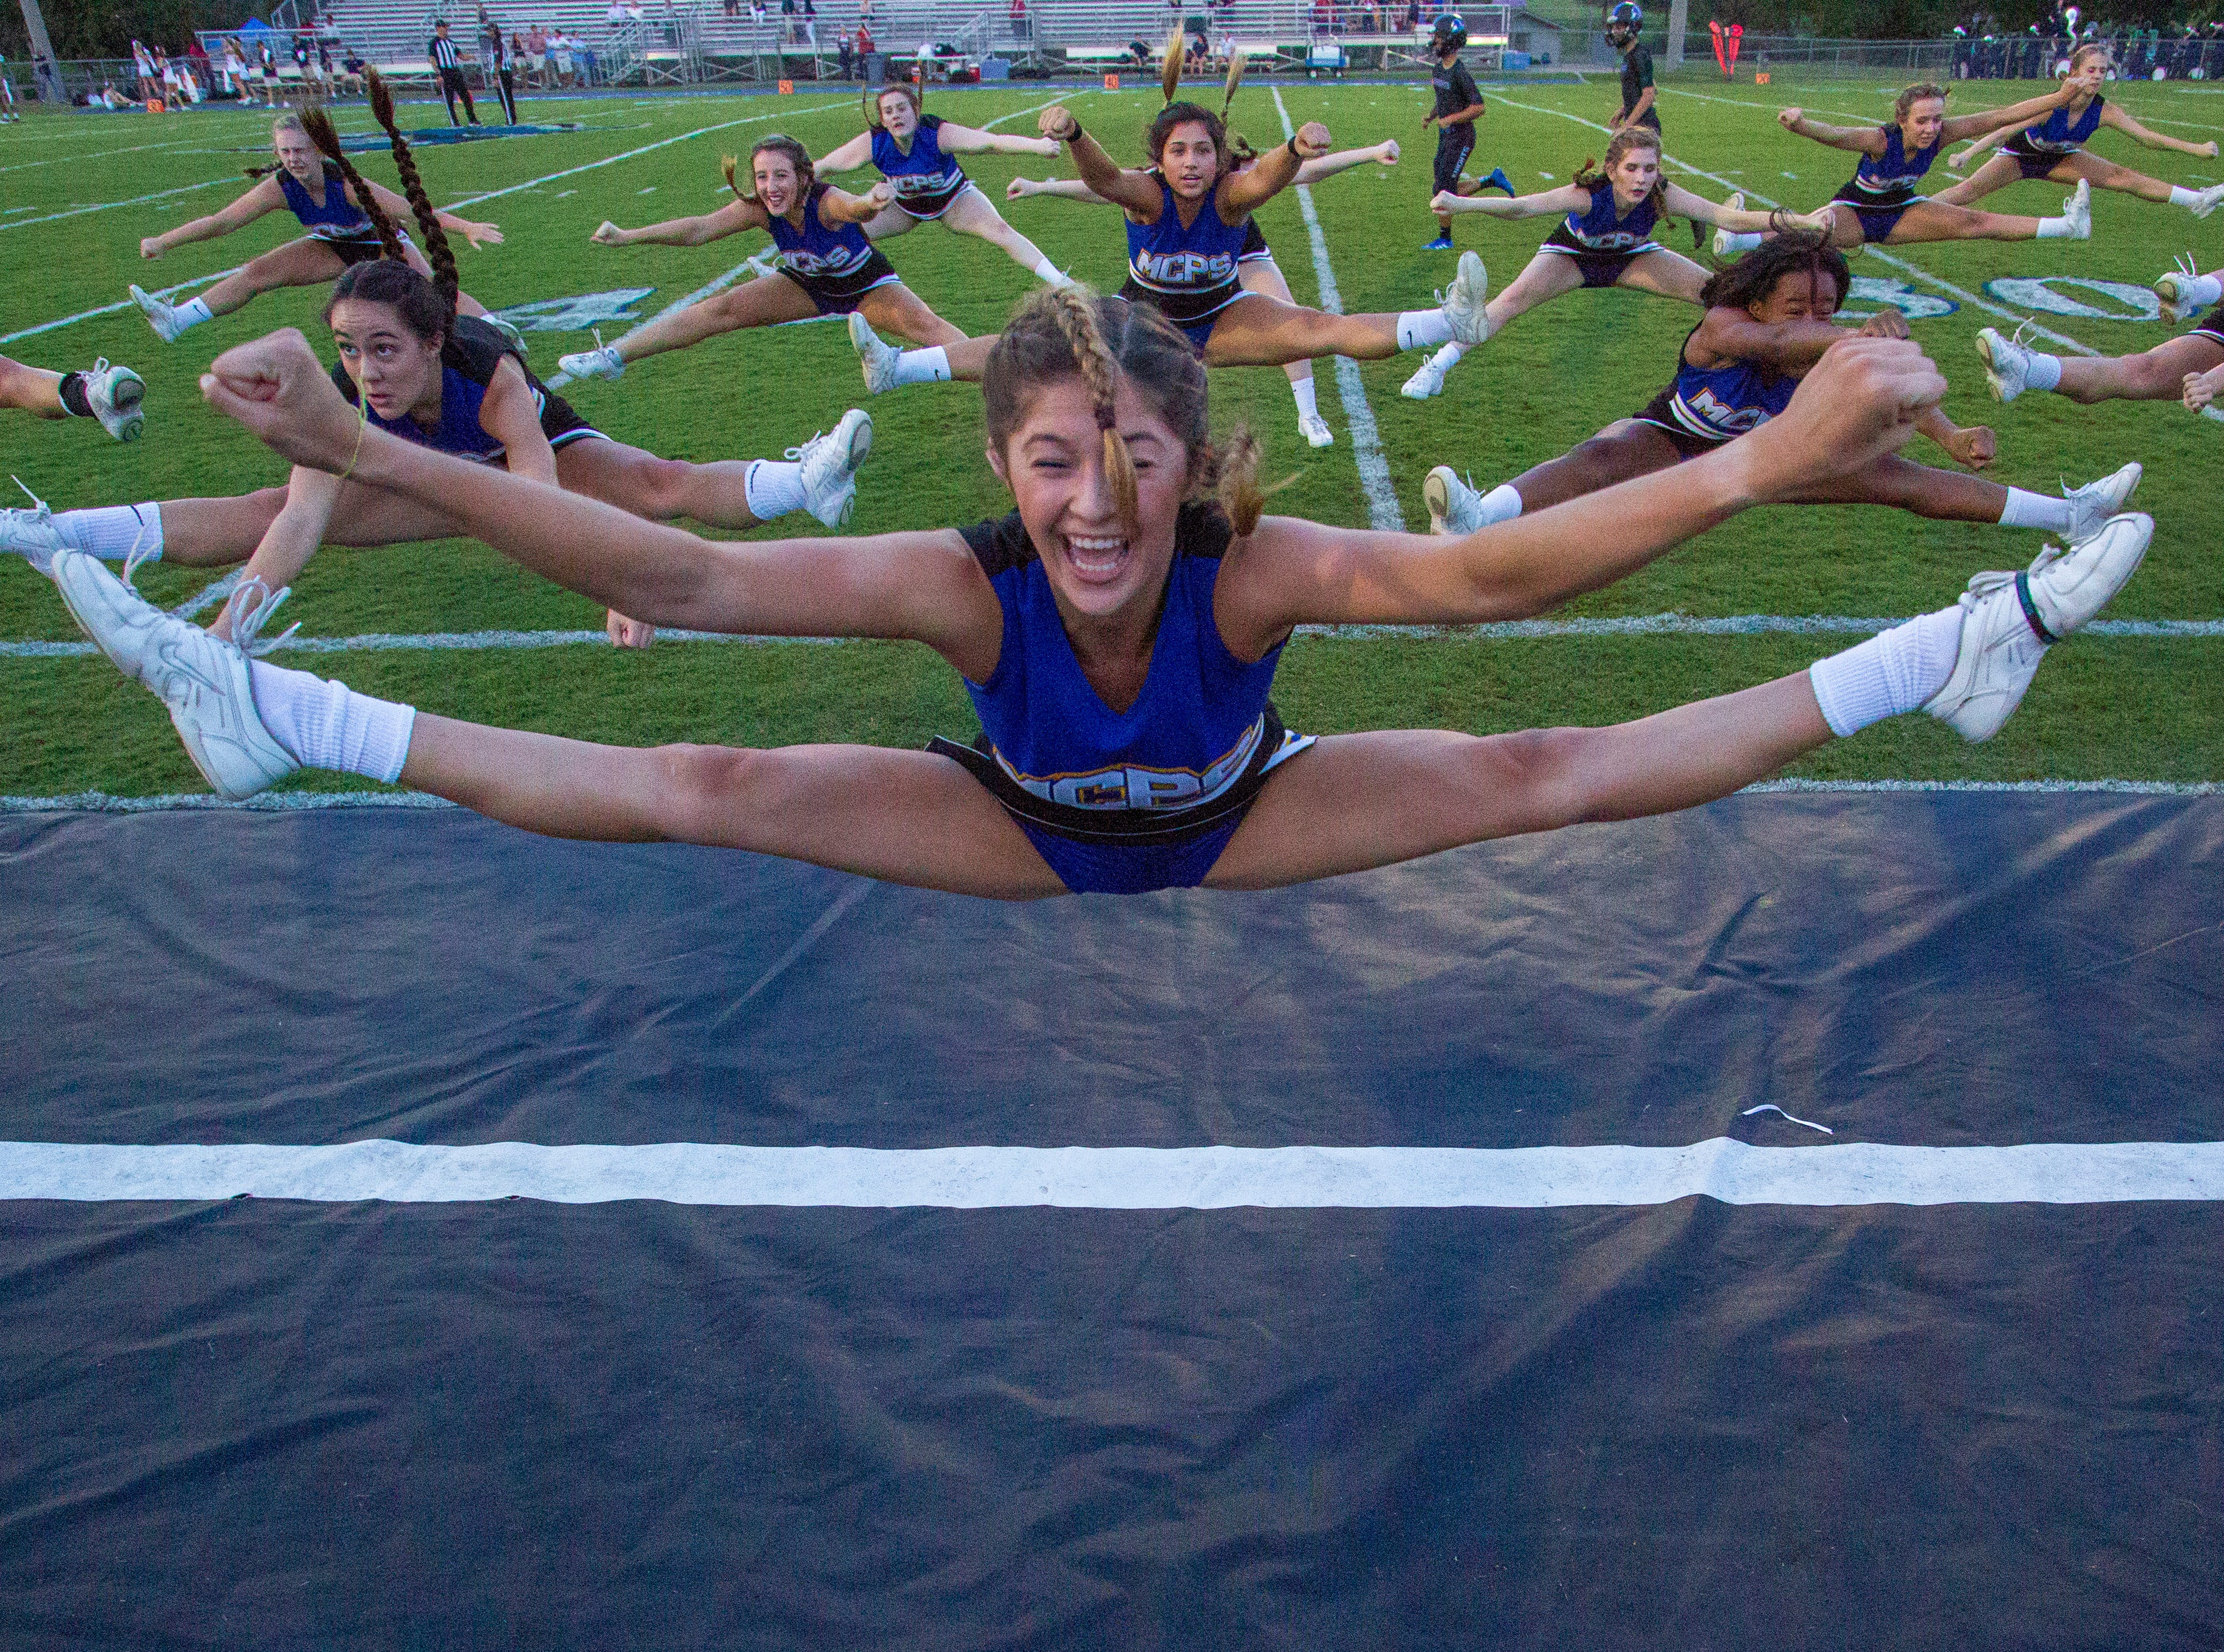 The Montgomery Catholic cheerleaders warm up with some toe touches.